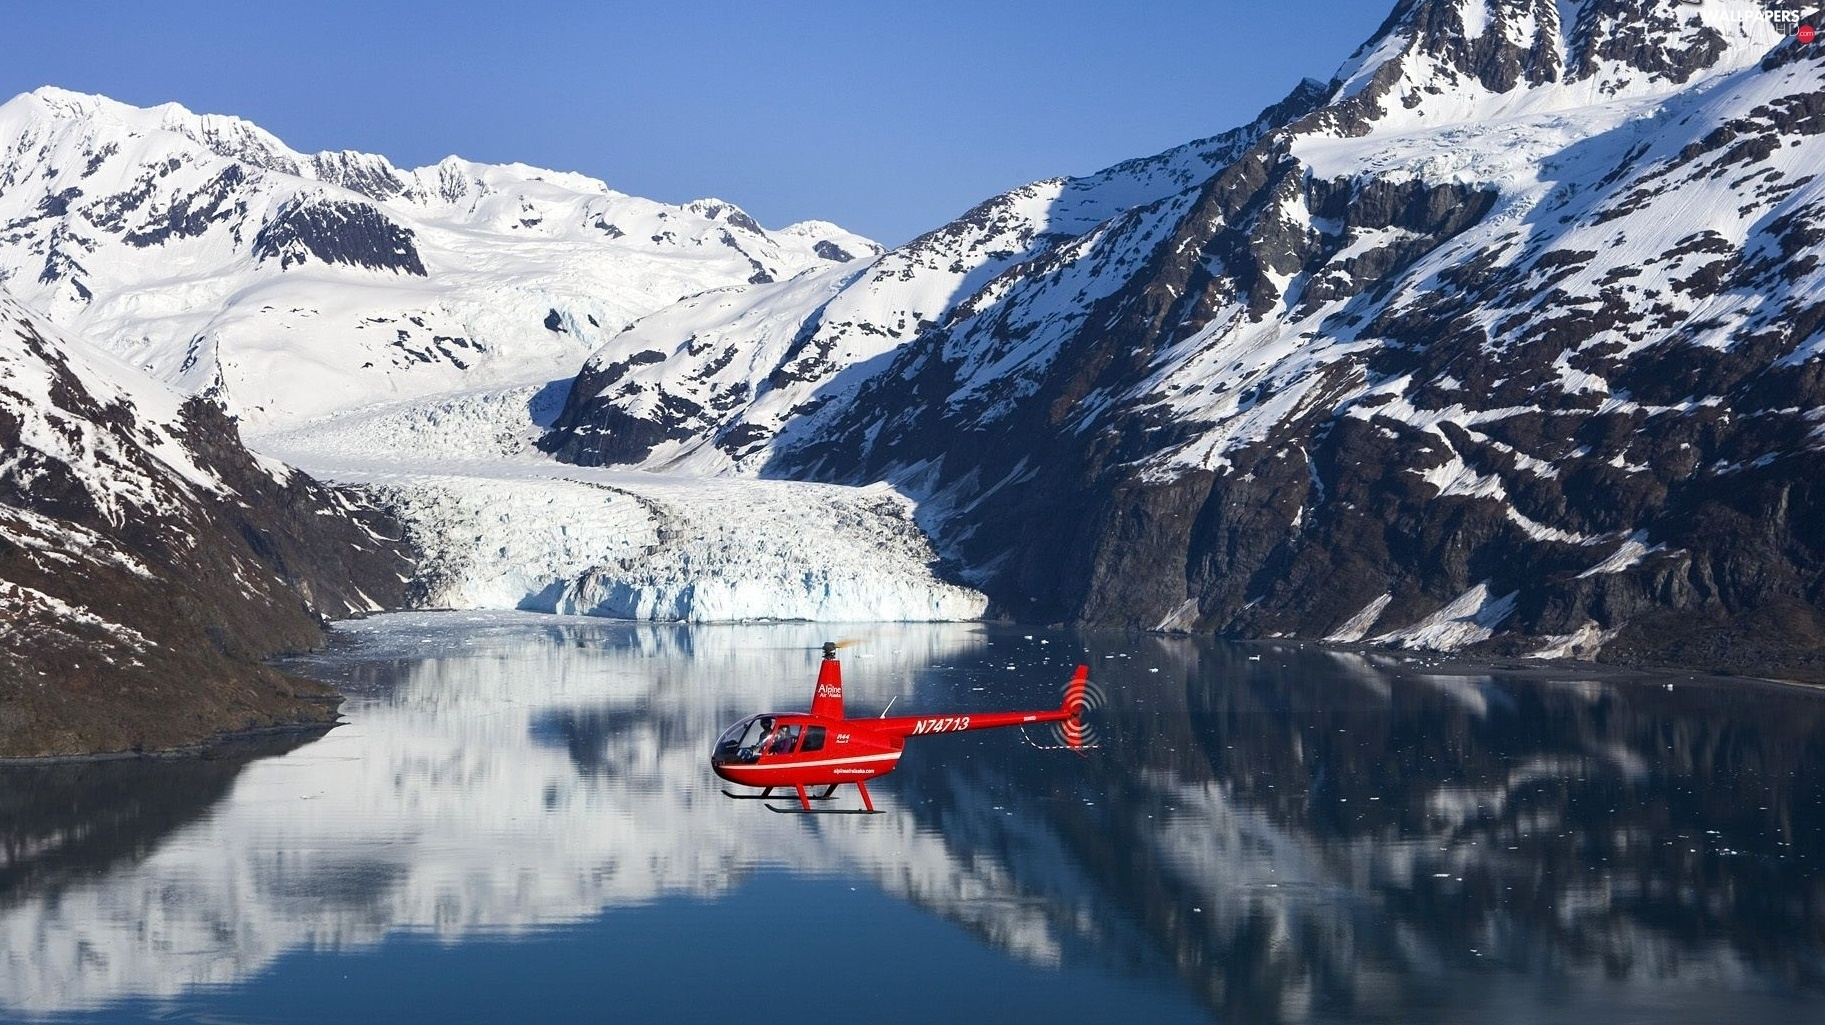 Helicopter, lake, Mountains